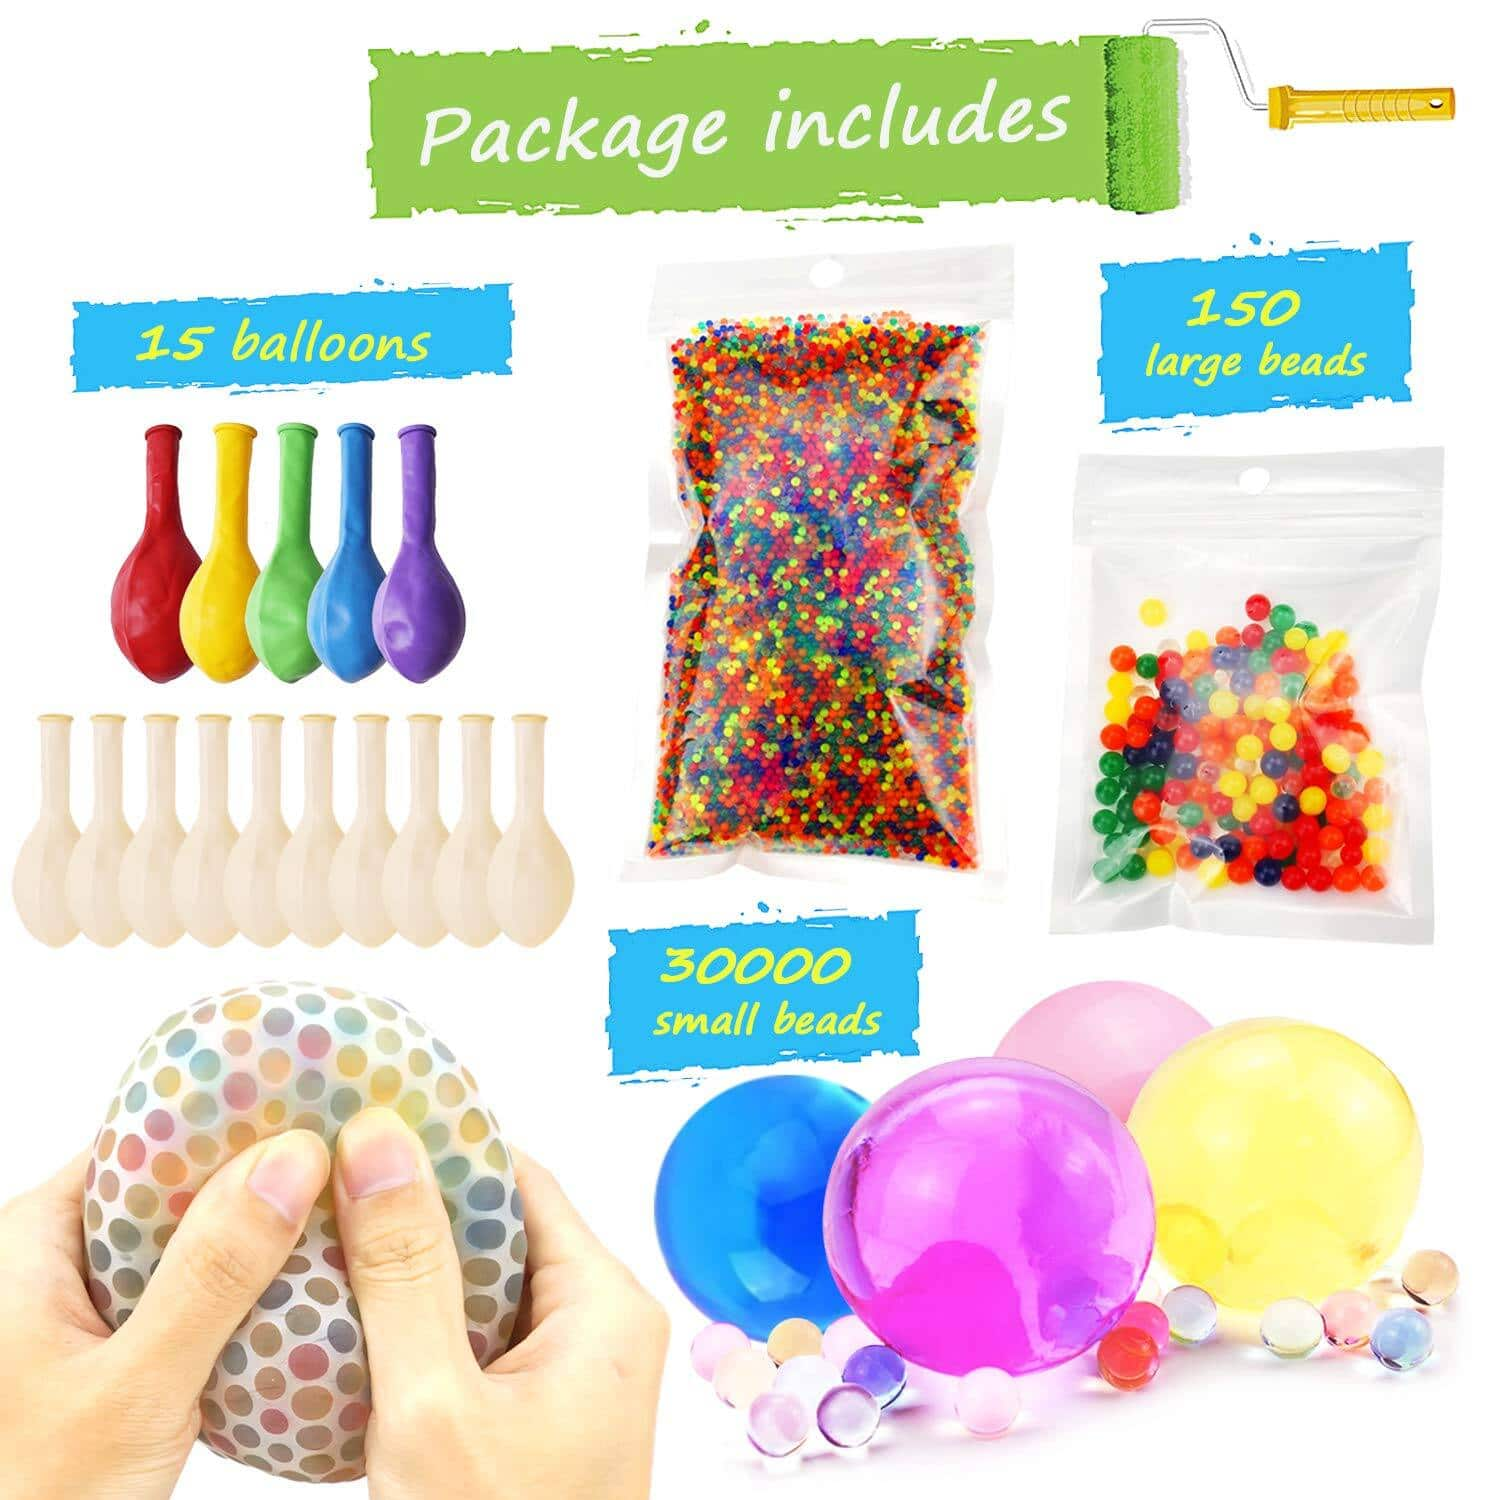 Water Beads Pack for Kids plus Tactile Sensory Toys $11.39 + Free Shipping w/PRIME